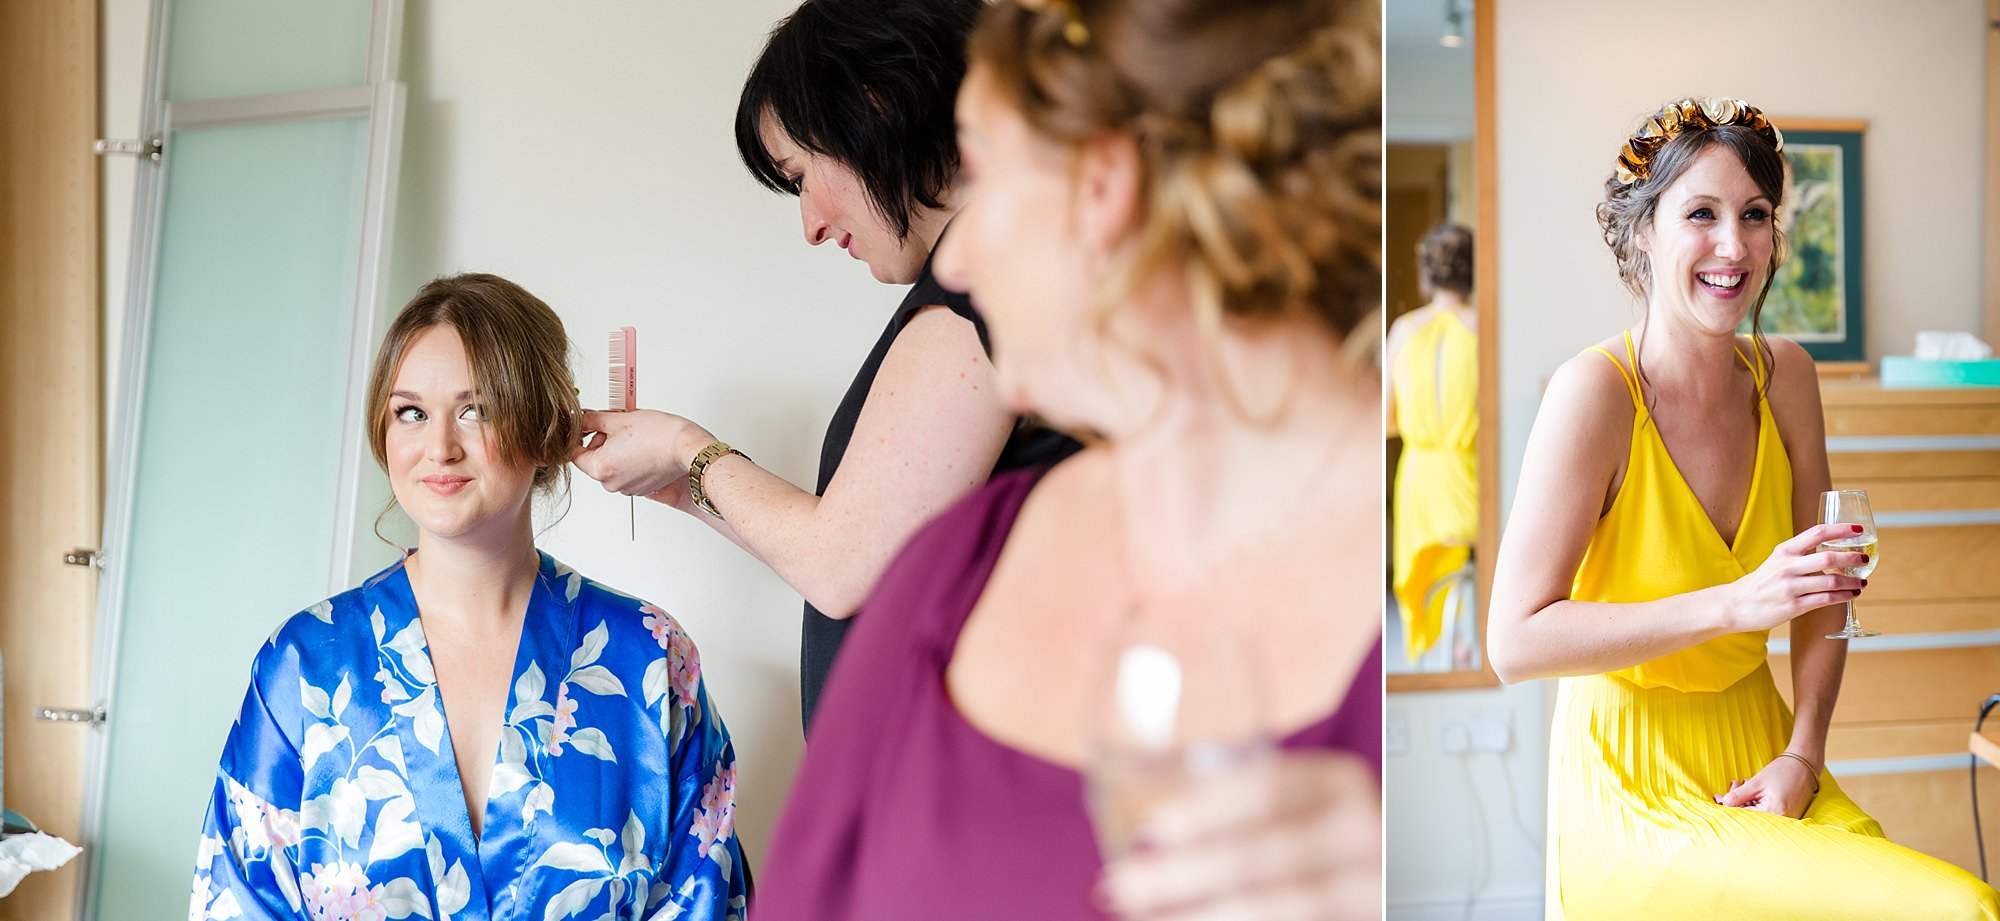 Fun London Wedding portrait of bride and bridesmaids laughing as they get ready